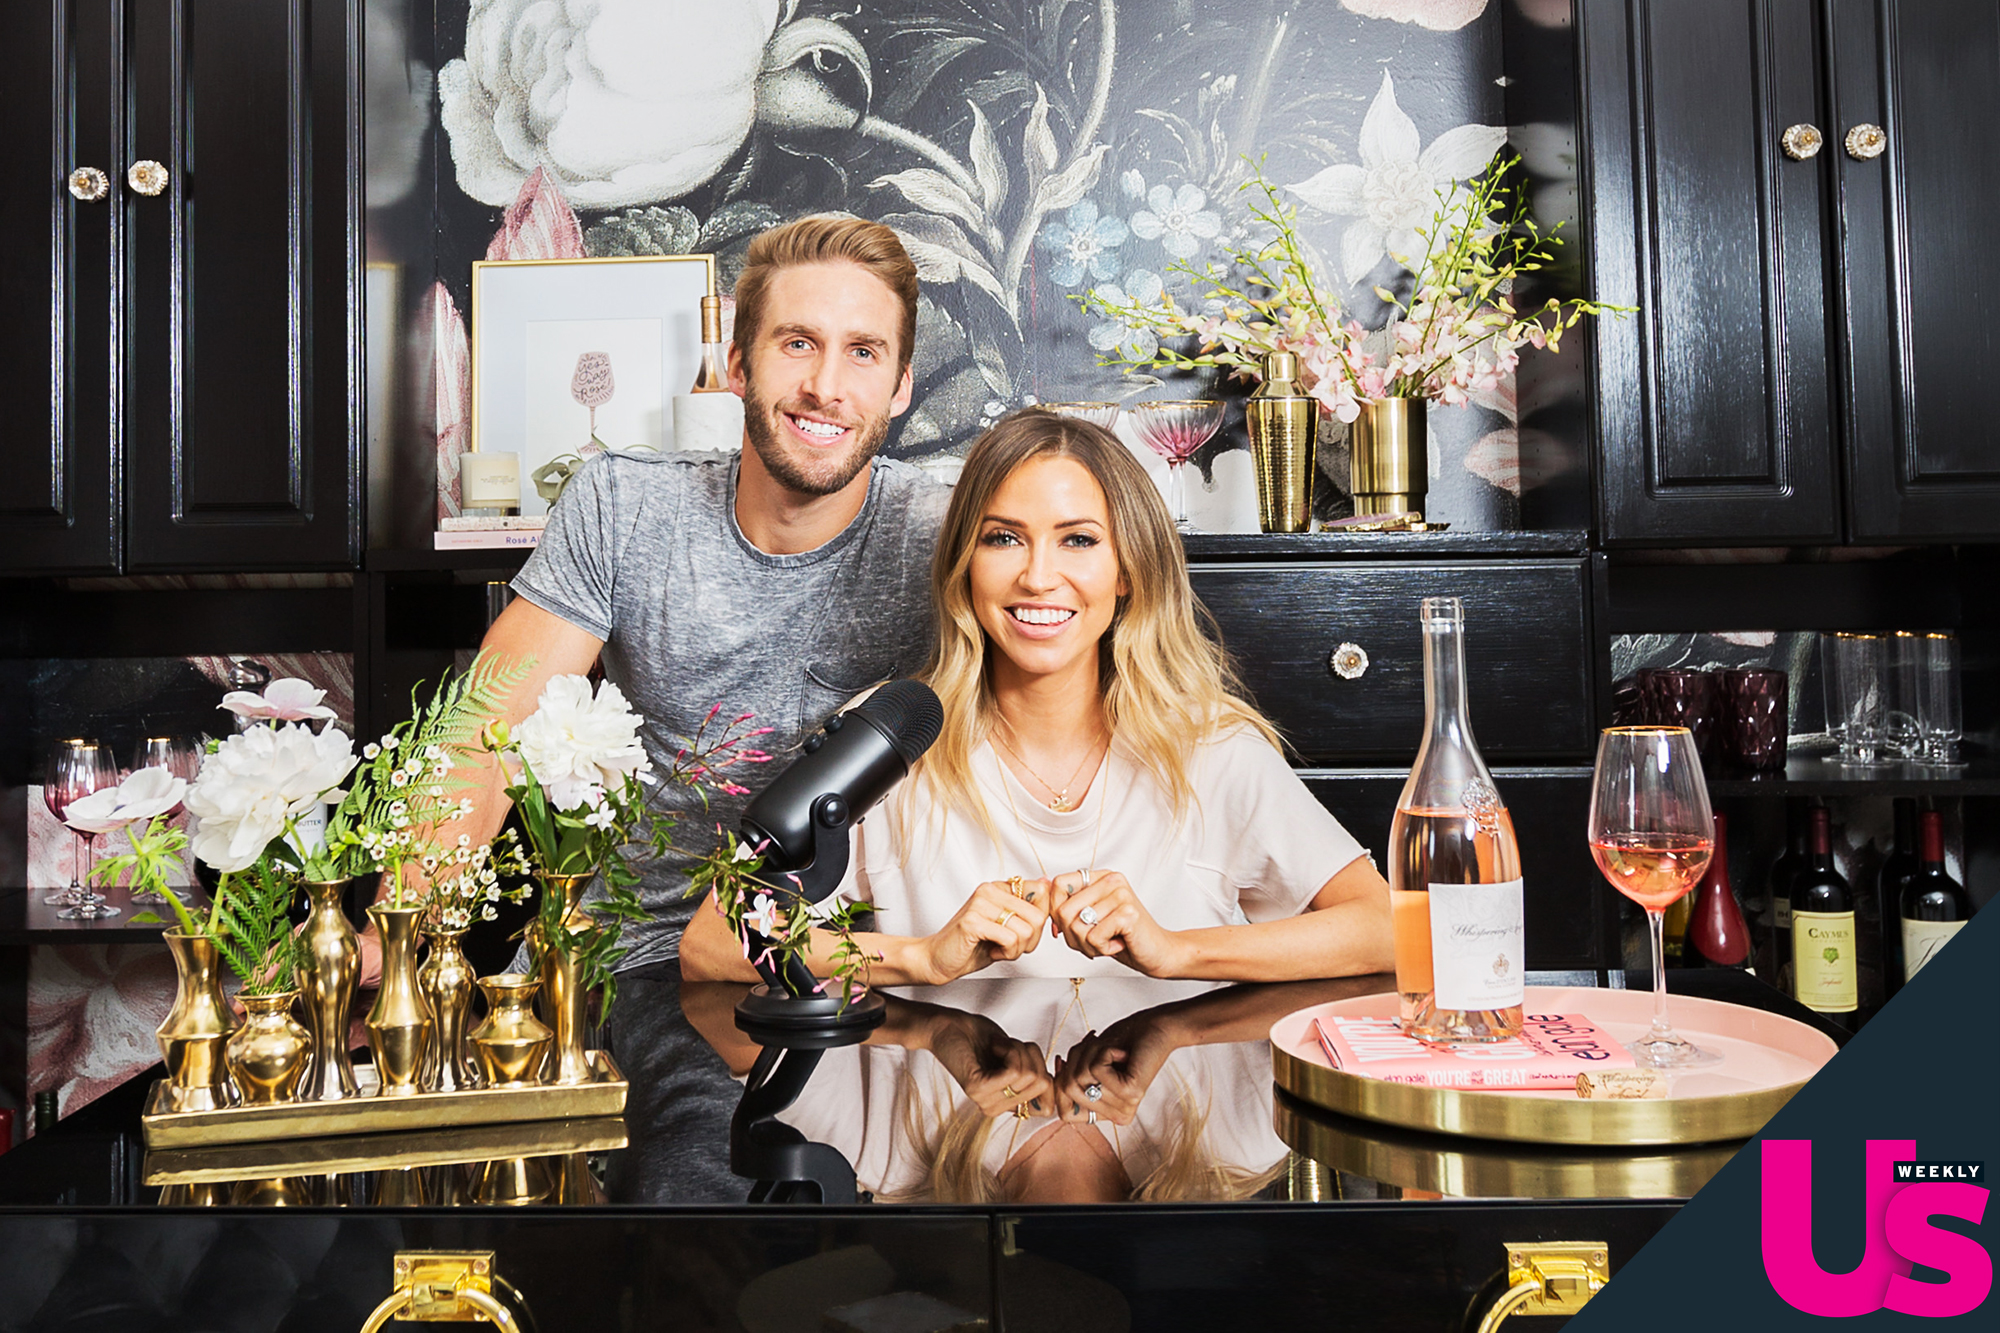 Kaitlyn Bristowe - Shawn Booth - Fan Forum - Media SM - NO Discussion - Page 6 Kaitlyn-bristowe-shawn-booth-revamped-home-podcast